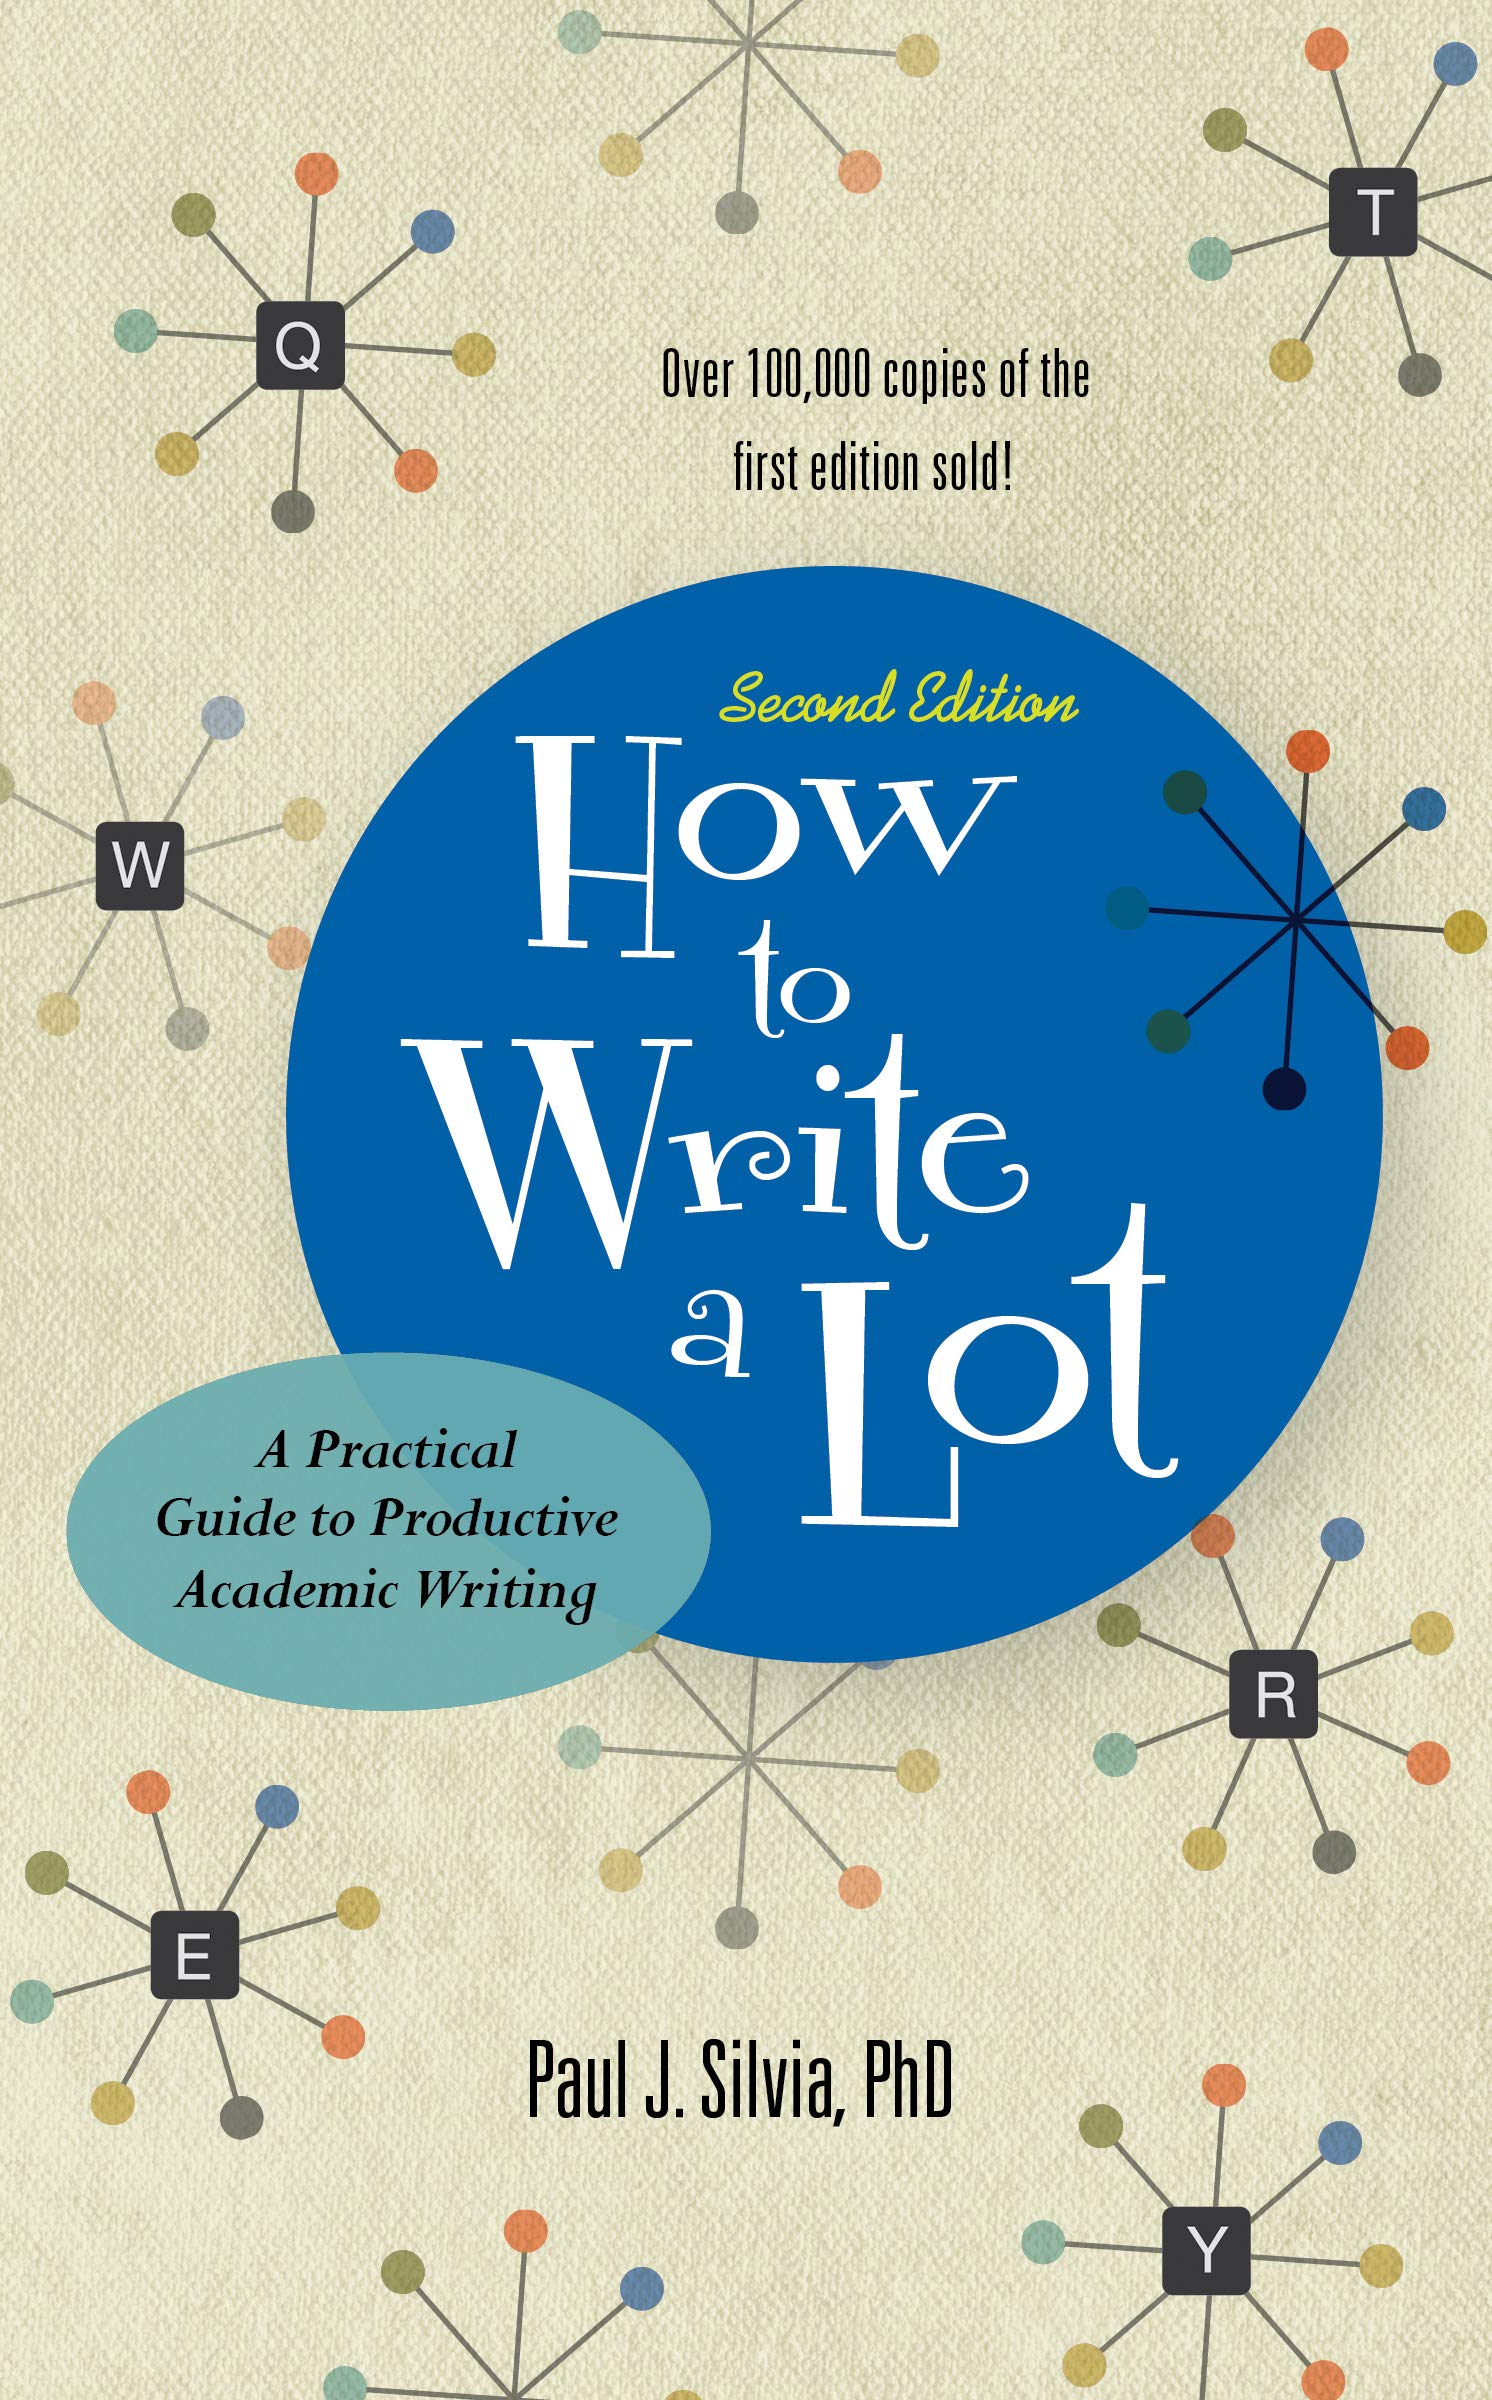 How to Write a Lot- A Practical Guide to Productive Academic Writing by Paul J. Silvia